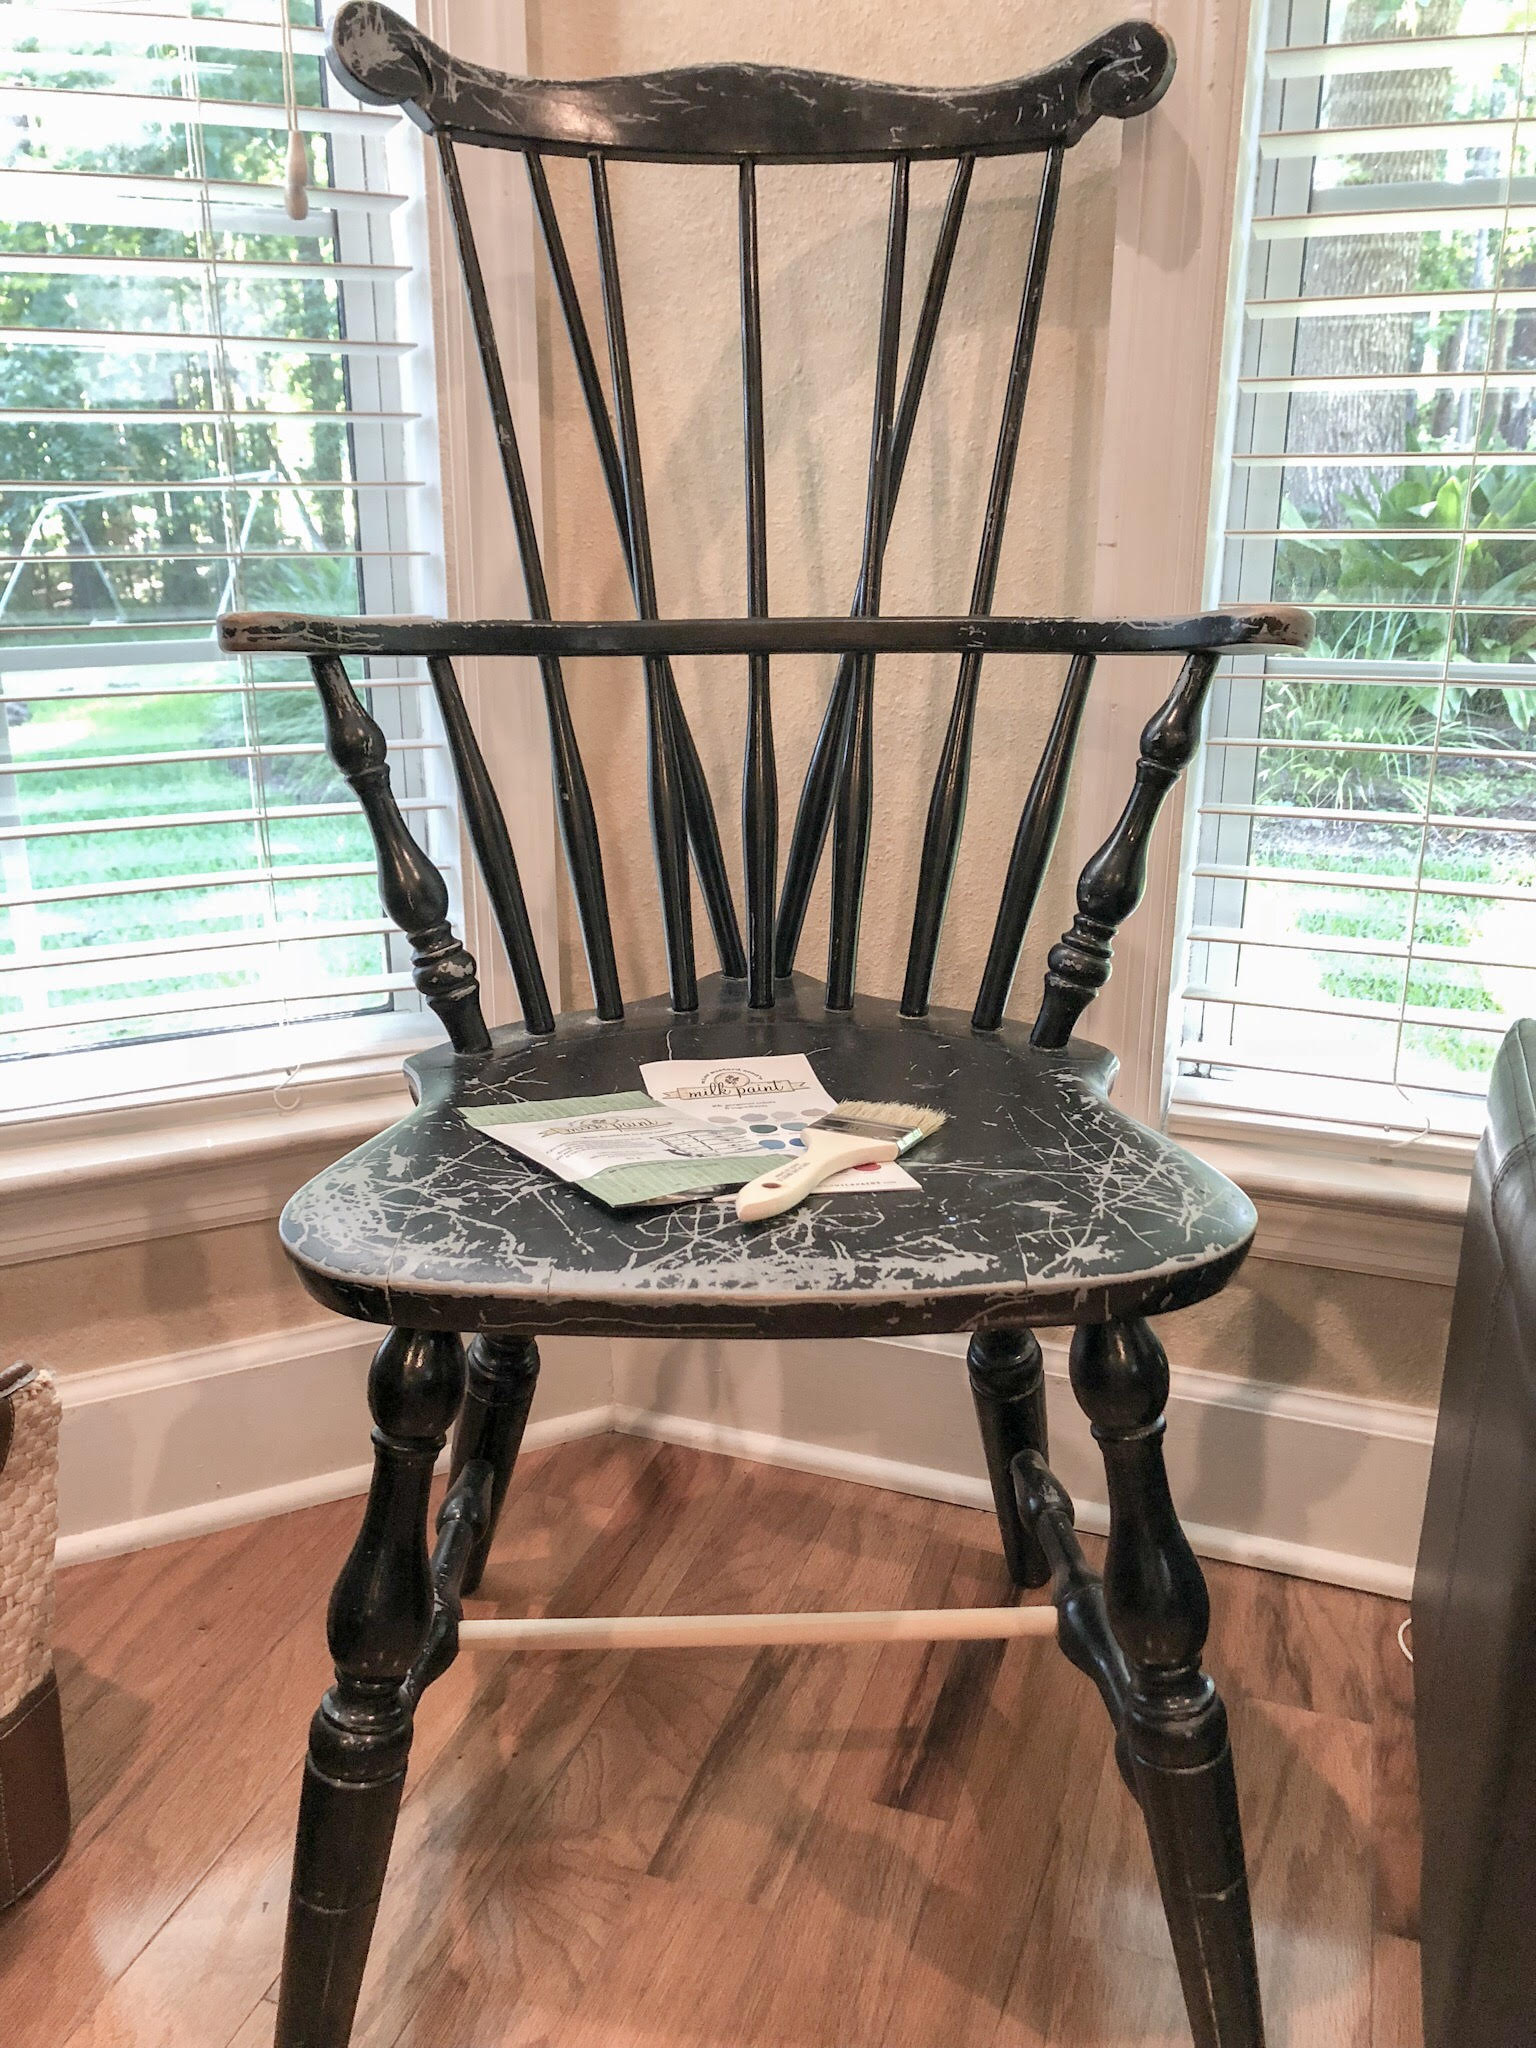 Black windsor chair that was repaired and ready to be painted with Miss Mustard Seed Paint.